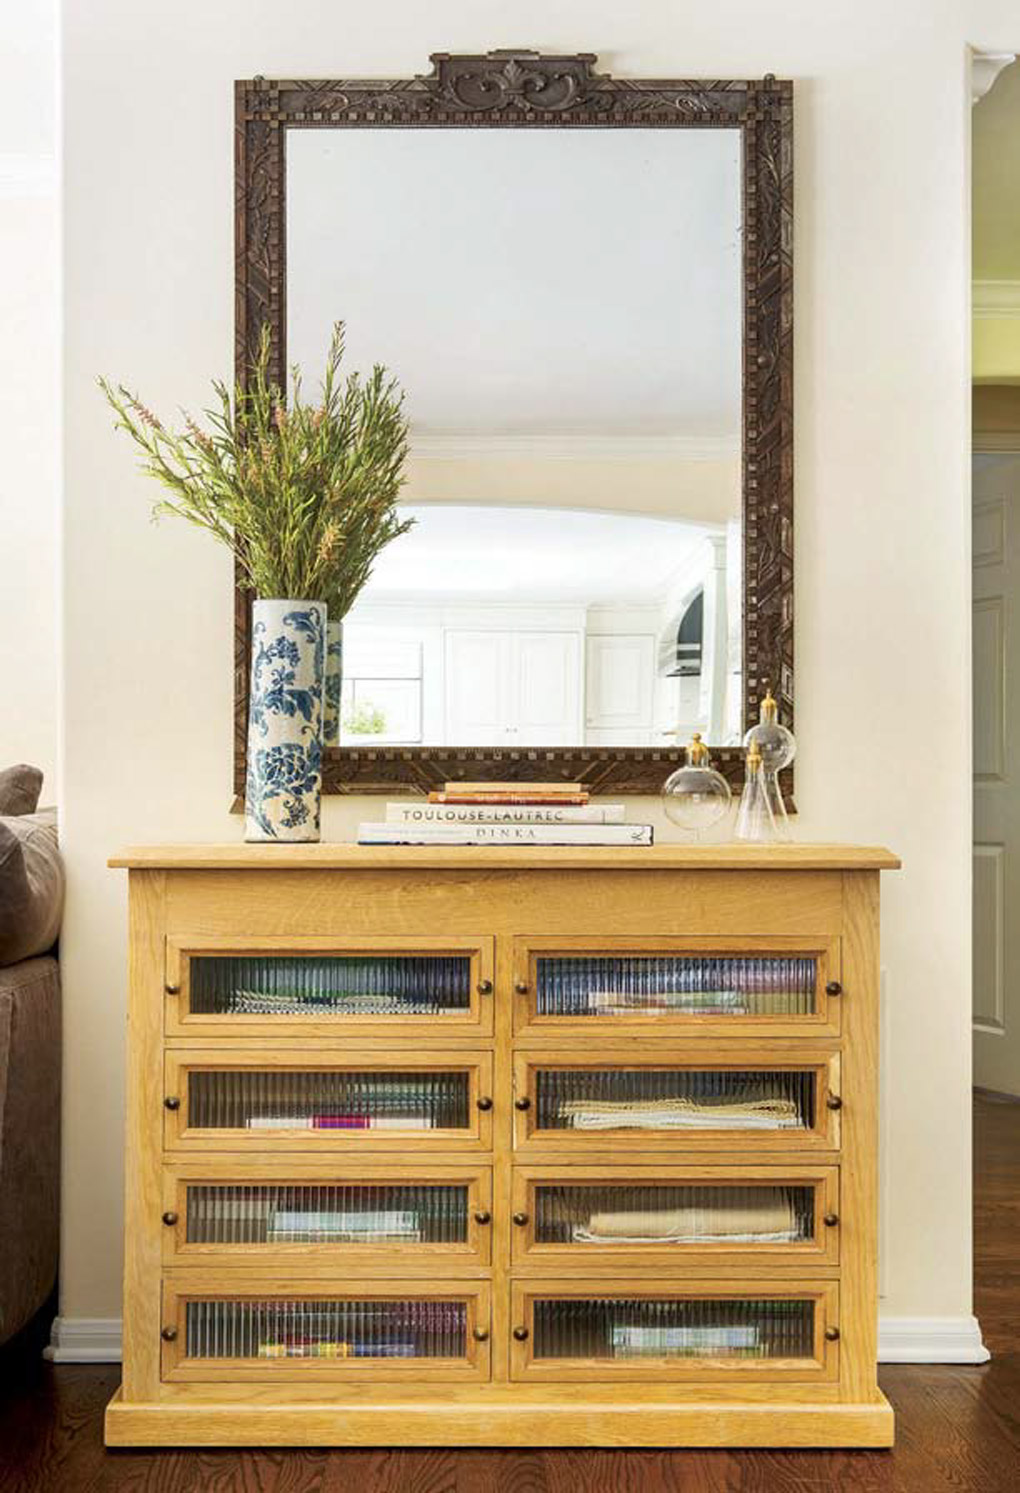 Custom made cabinet with muted glass panels topped with an ornate mirror mounted to the wall.